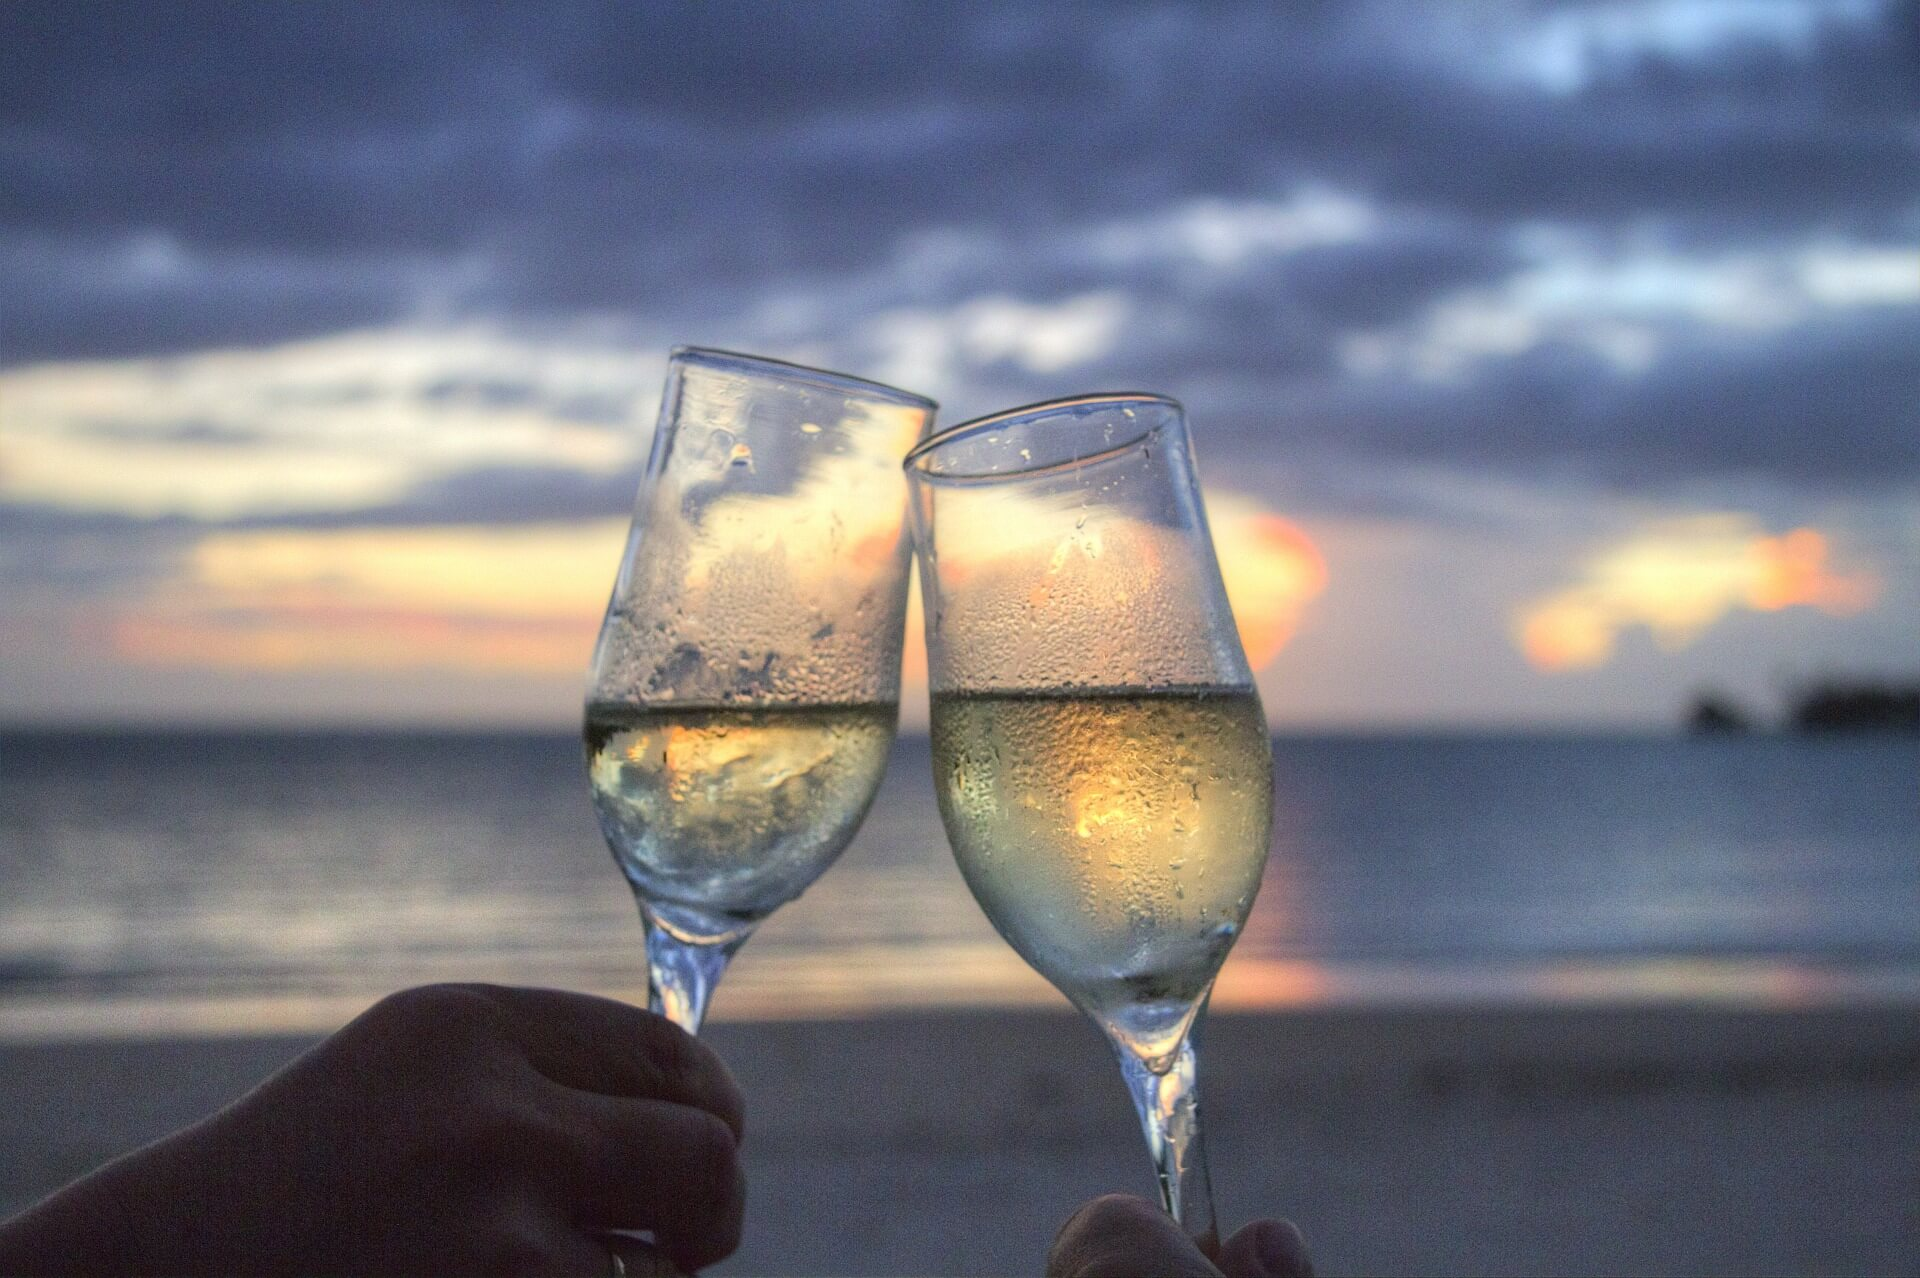 Unseen hands toast two glasses of white wine in front of a lake scene at sunset